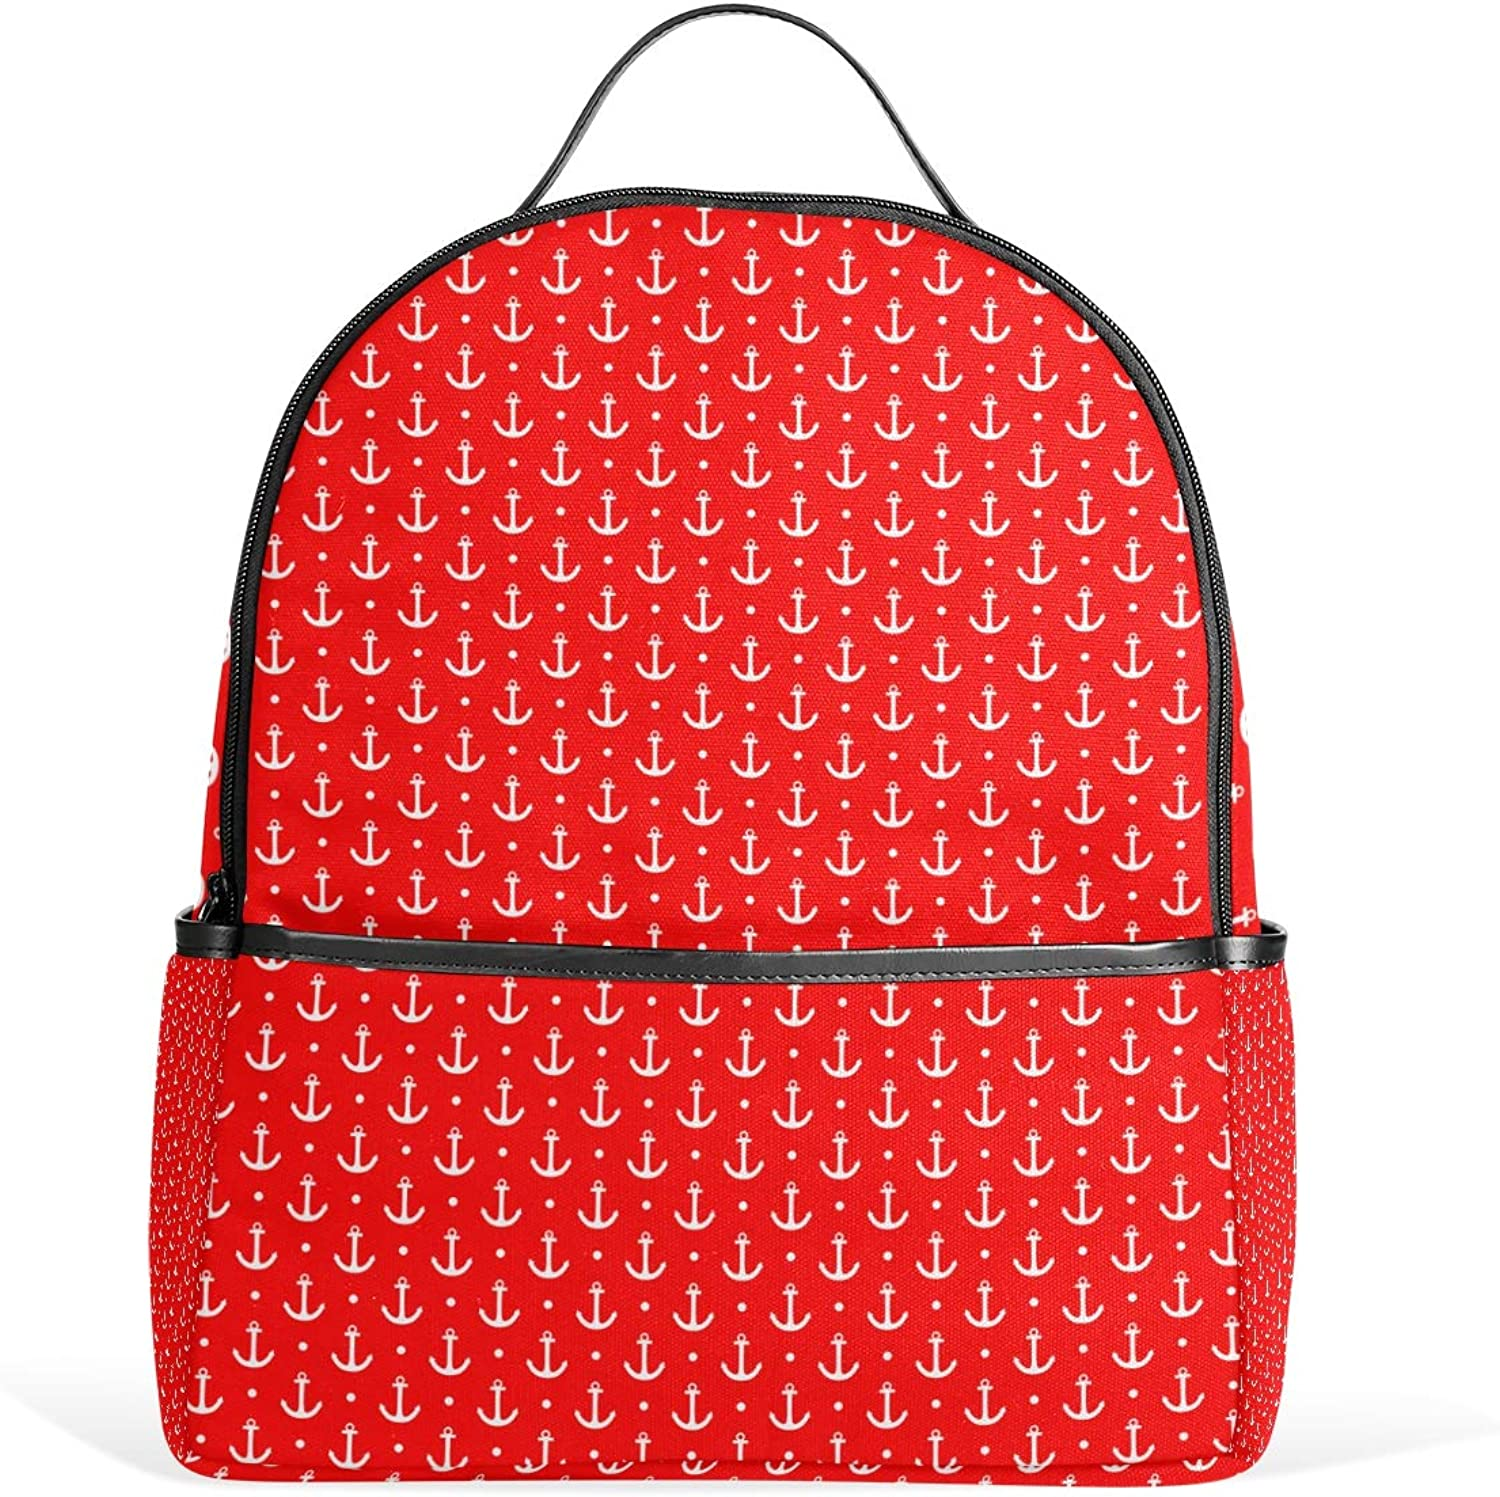 Fashion Backpack White Anchor and Dots Red Small Satchels Daypacks Travel Shoulder Bag Rucksack for Girls